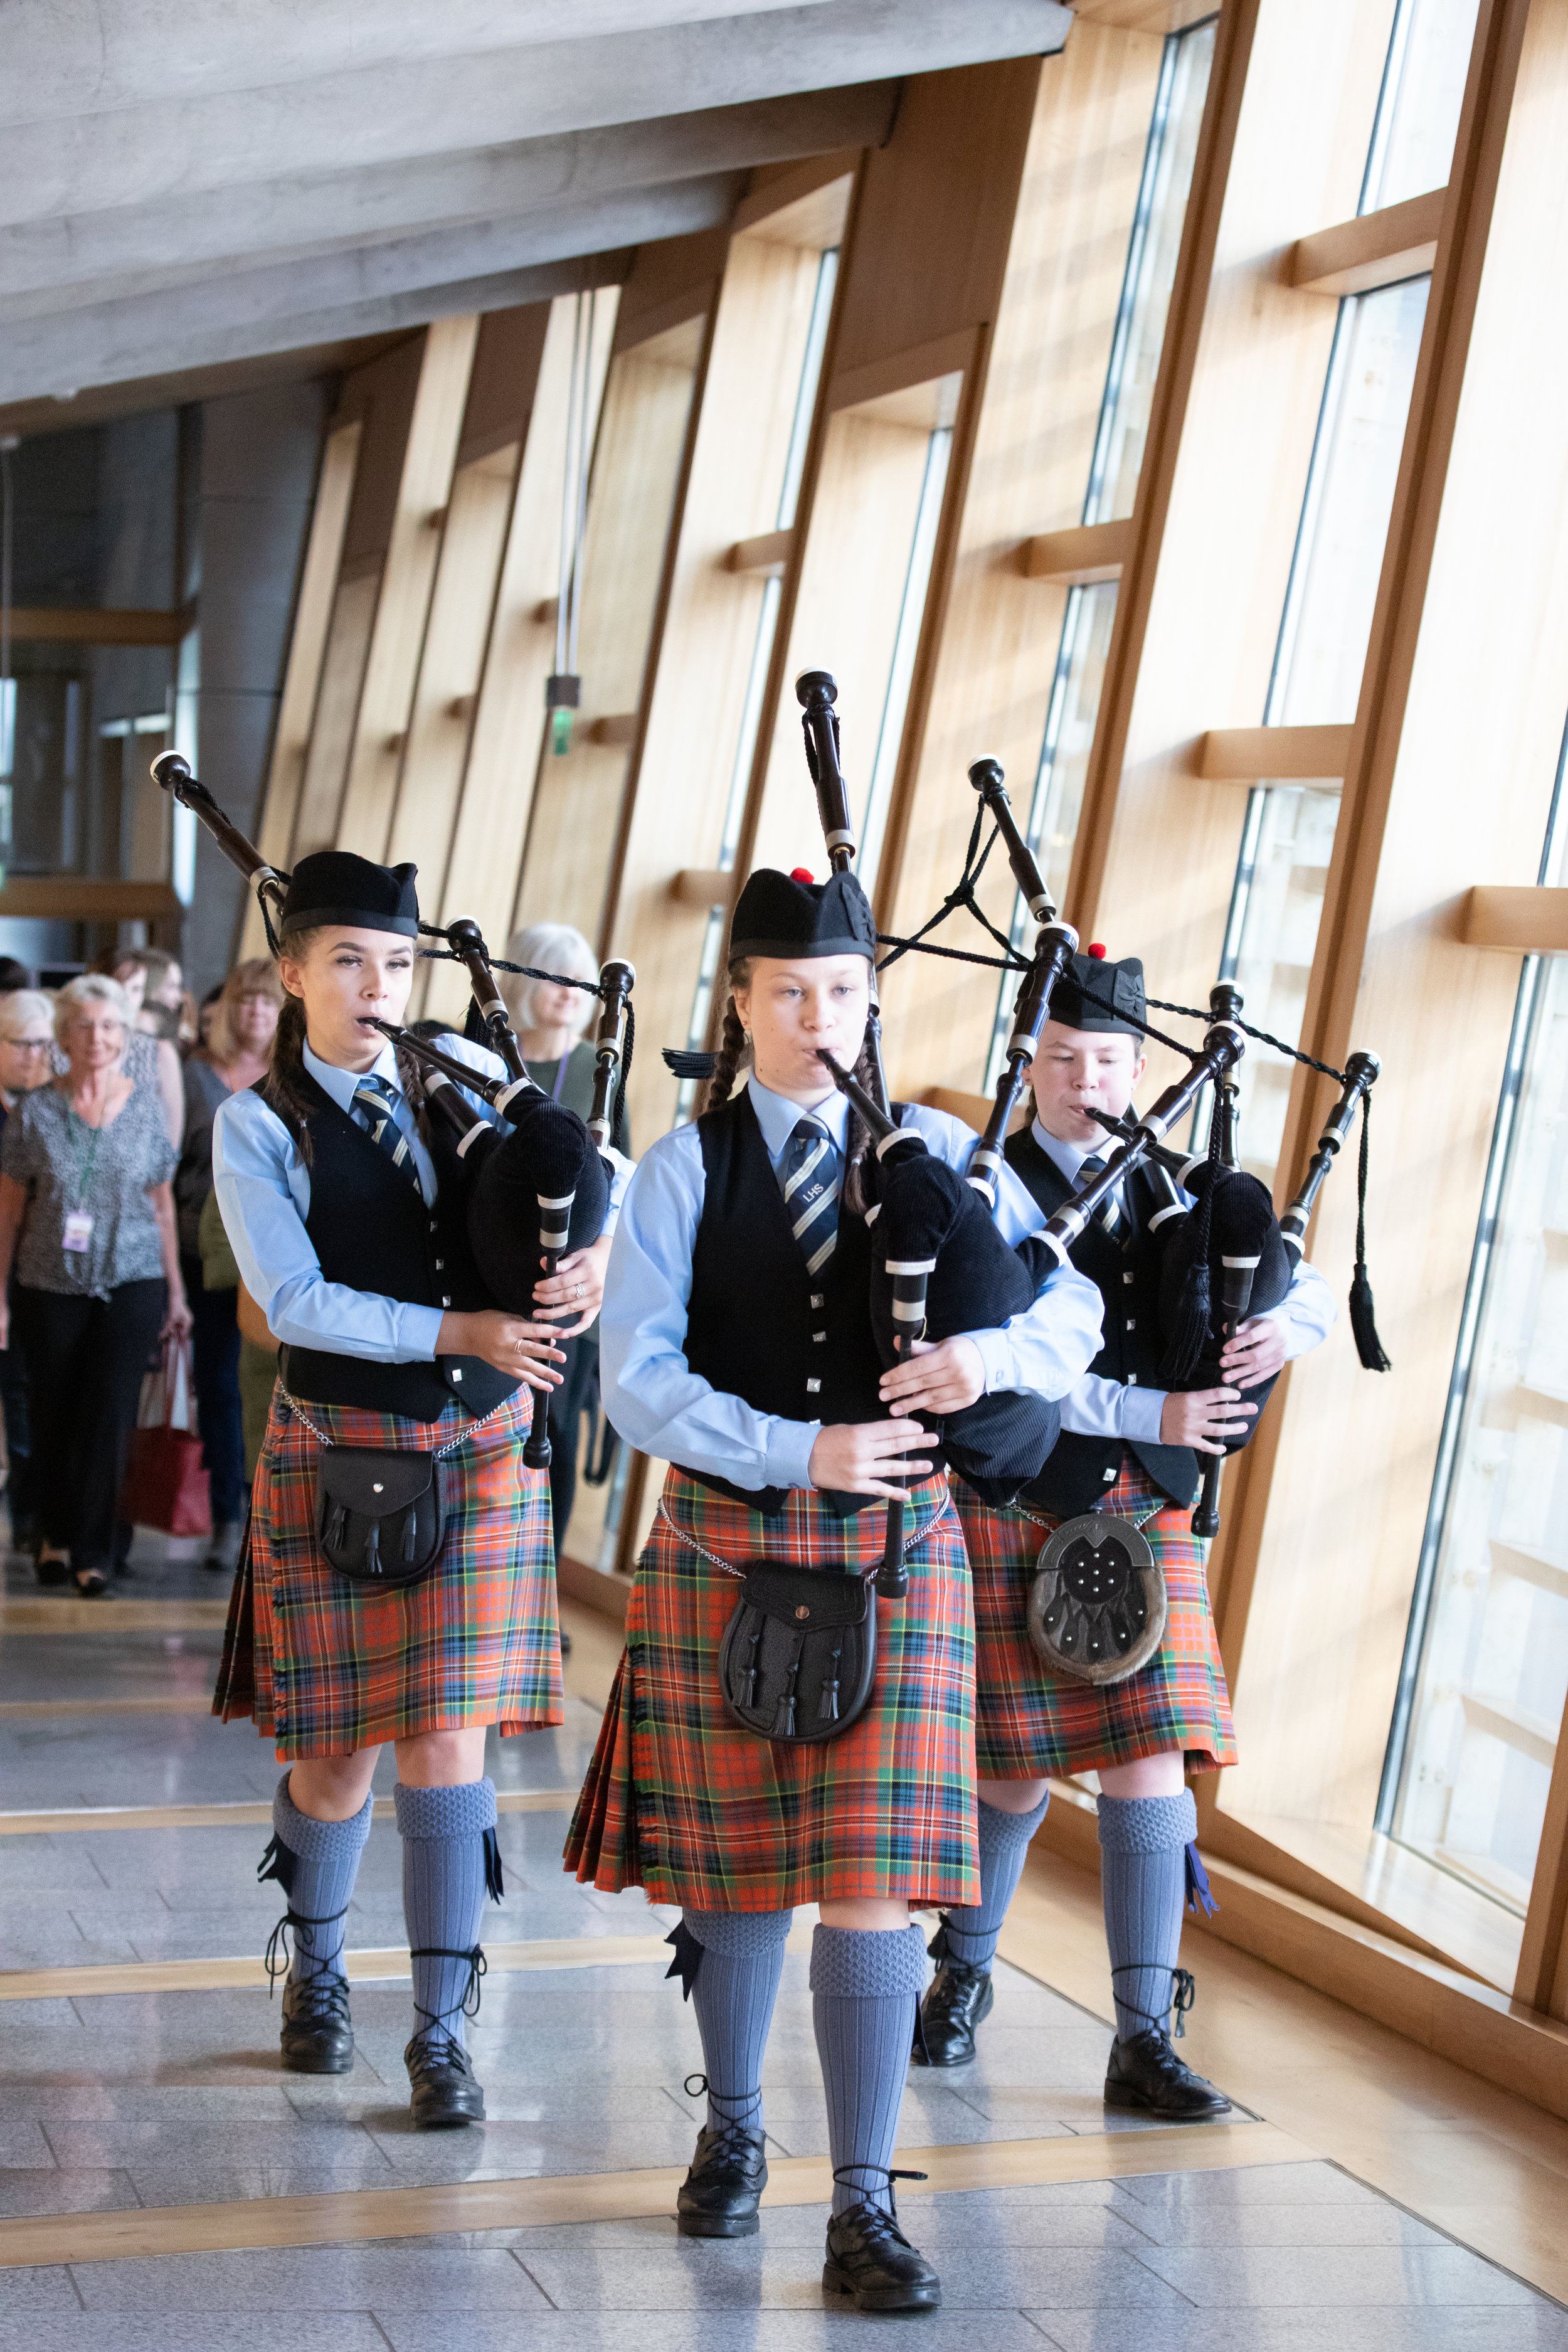 Copy of Pipers-8420.jpg